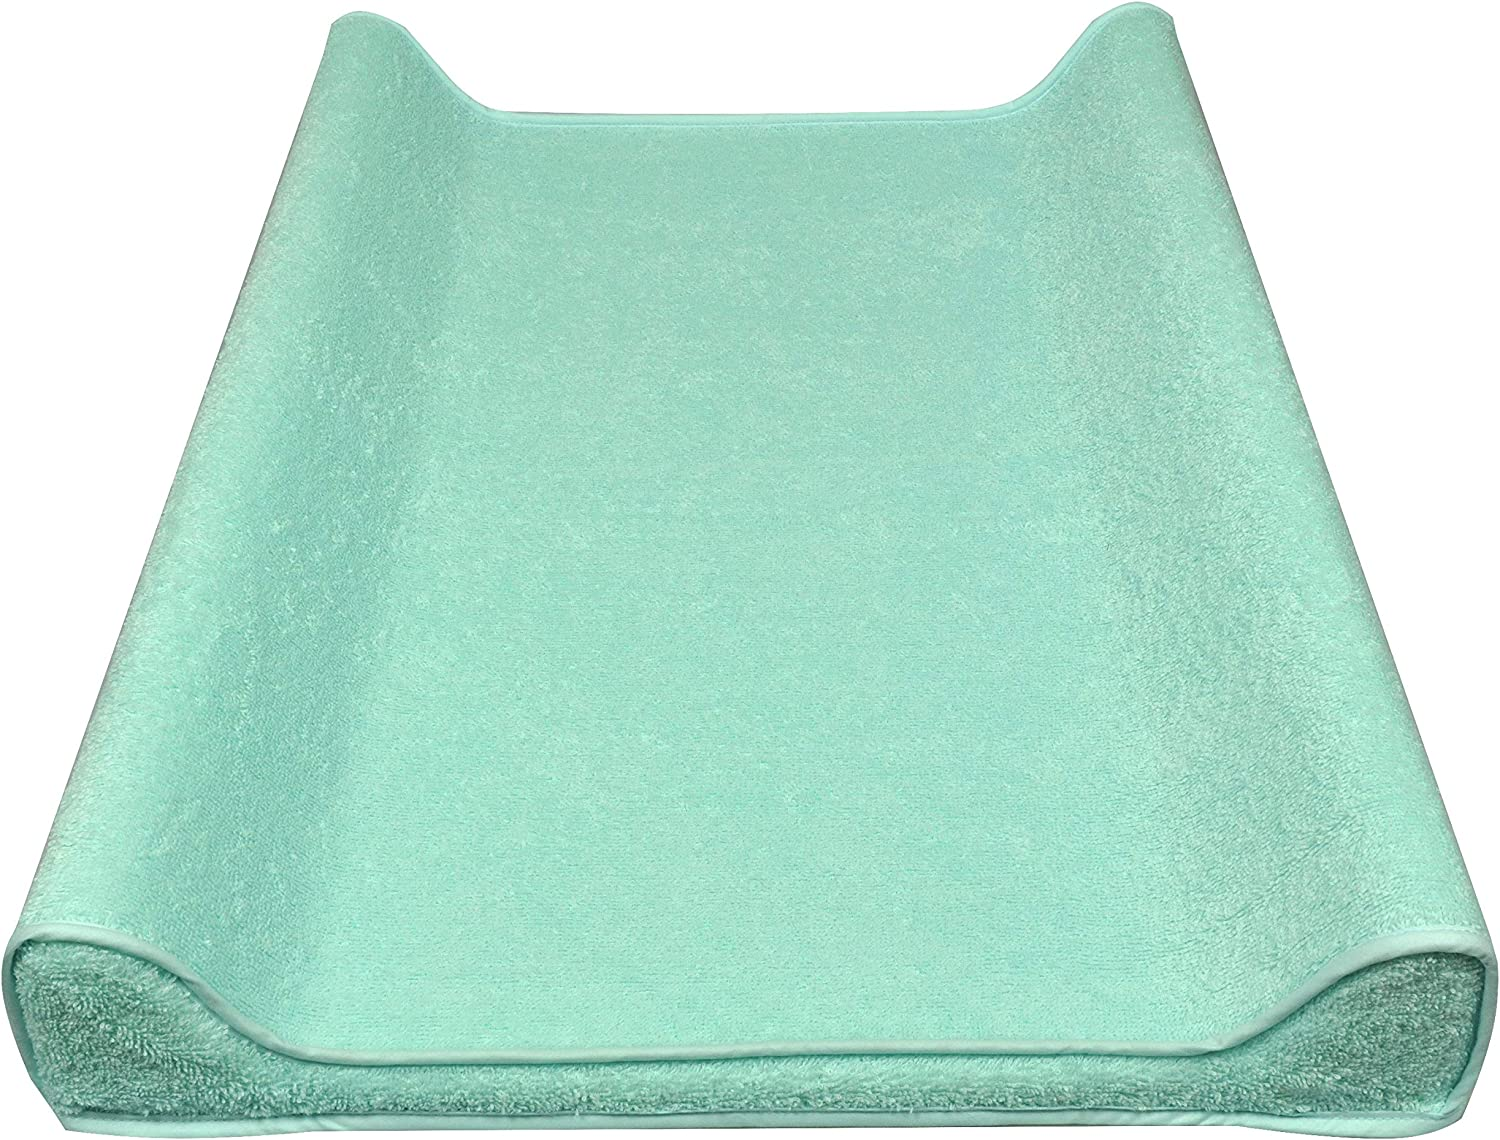 Asmi Baby Terry Cover for Wedge Changing Mat 50 x 70 cm turquoise